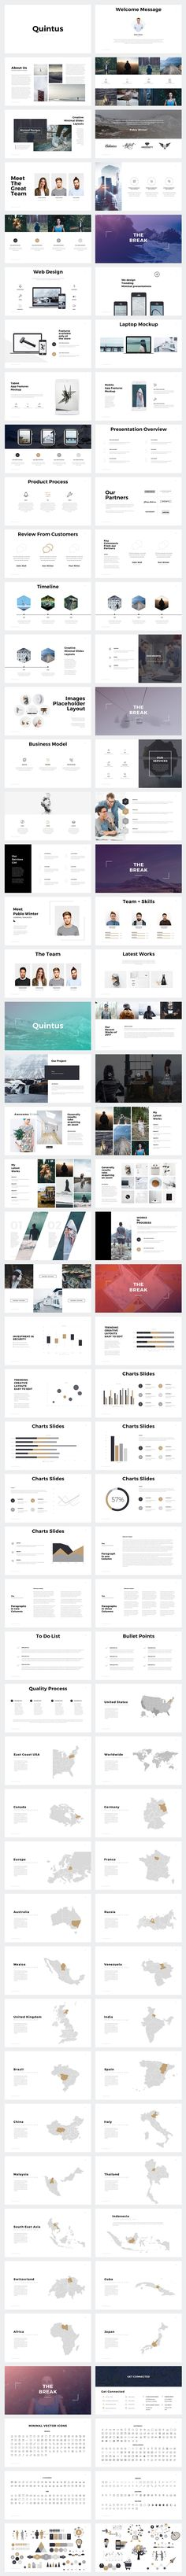 Present your works professional and clean with Quintus Minimal, this powerpoint presentation template has got an awesome contemporary design, with cool photo layouts and creative slides to show your portfolio.